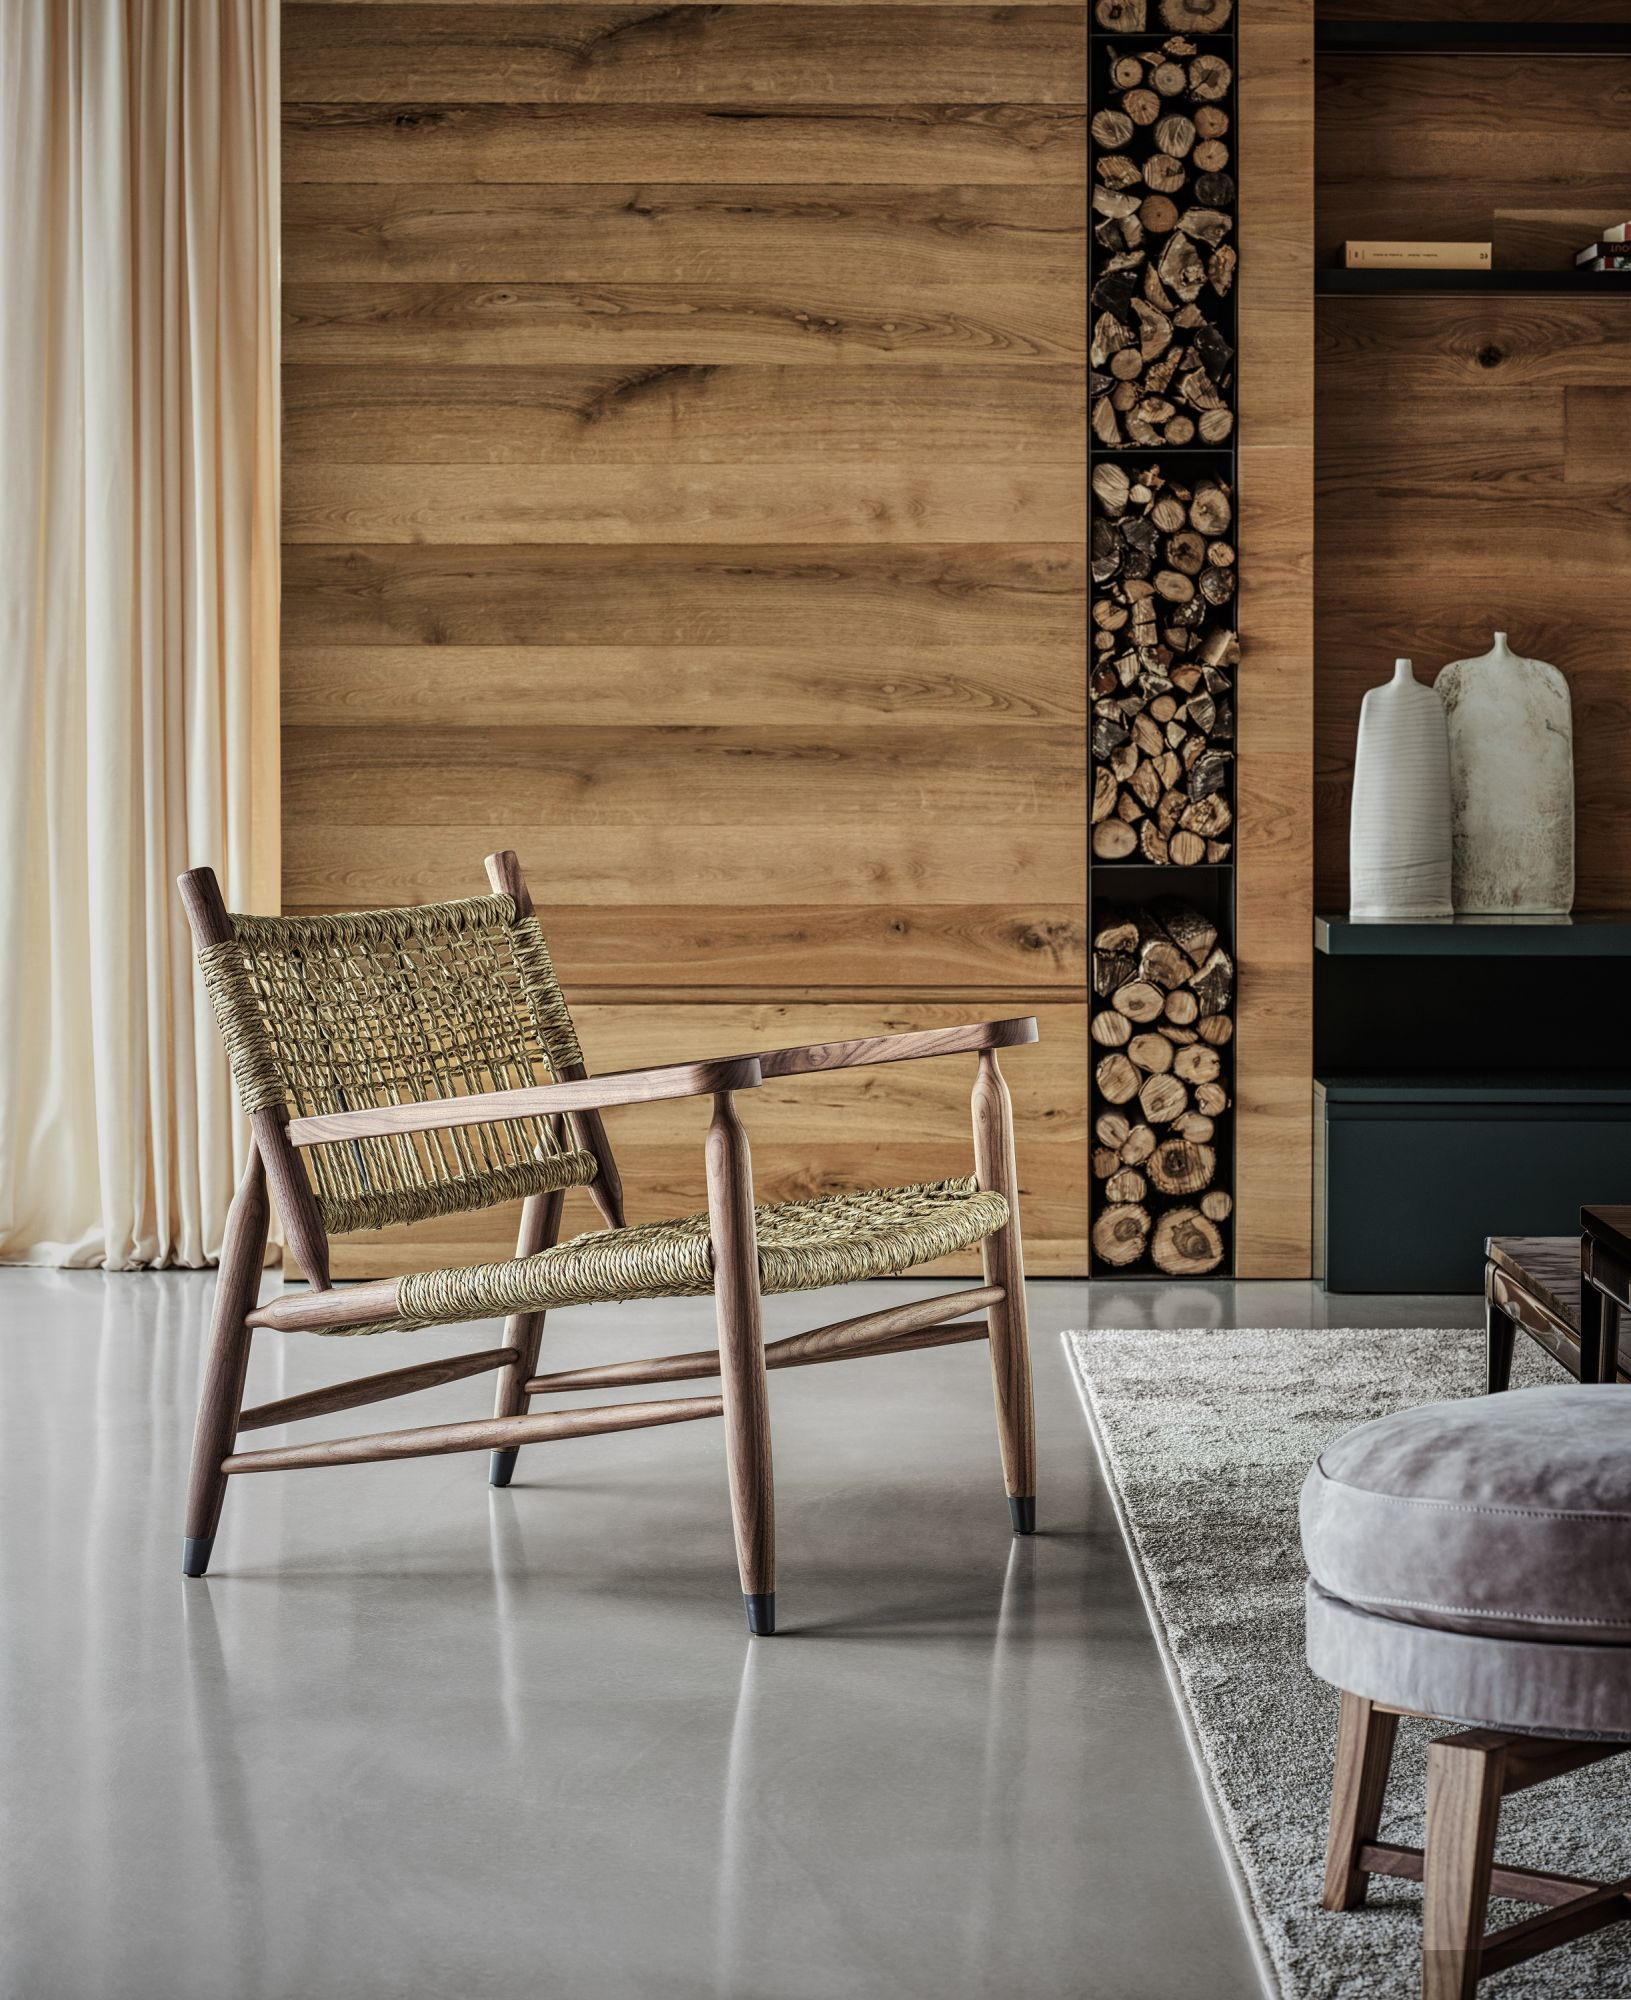 Furnish Your Domestic Life With Flexform's Indoor Collection